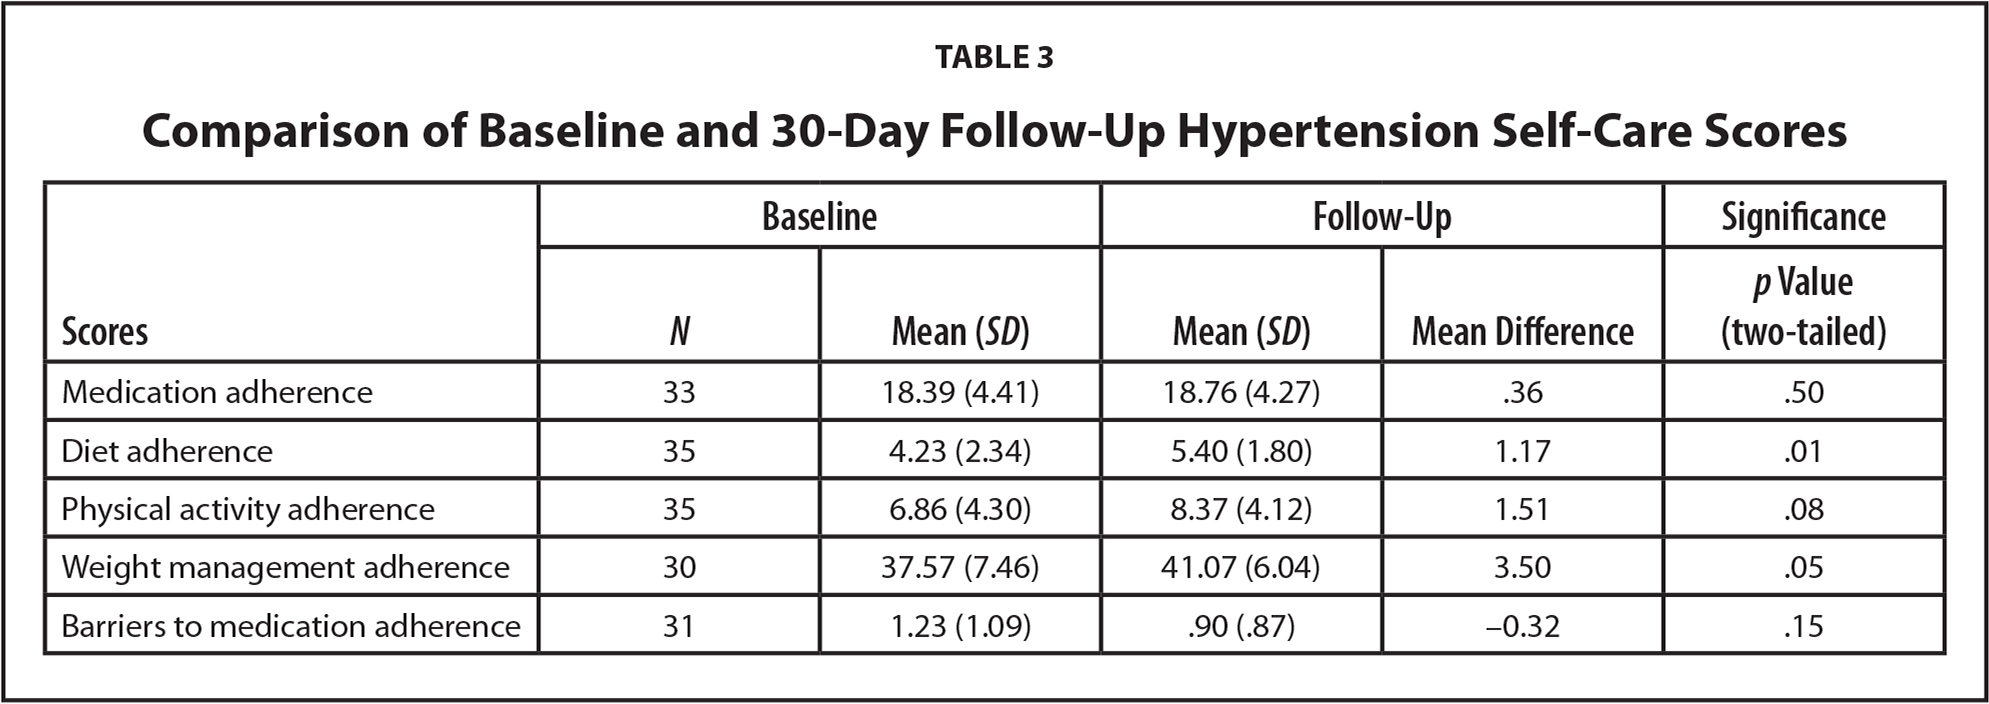 Comparison of Baseline and 30-Day Follow-Up Hypertension Self-Care Scores